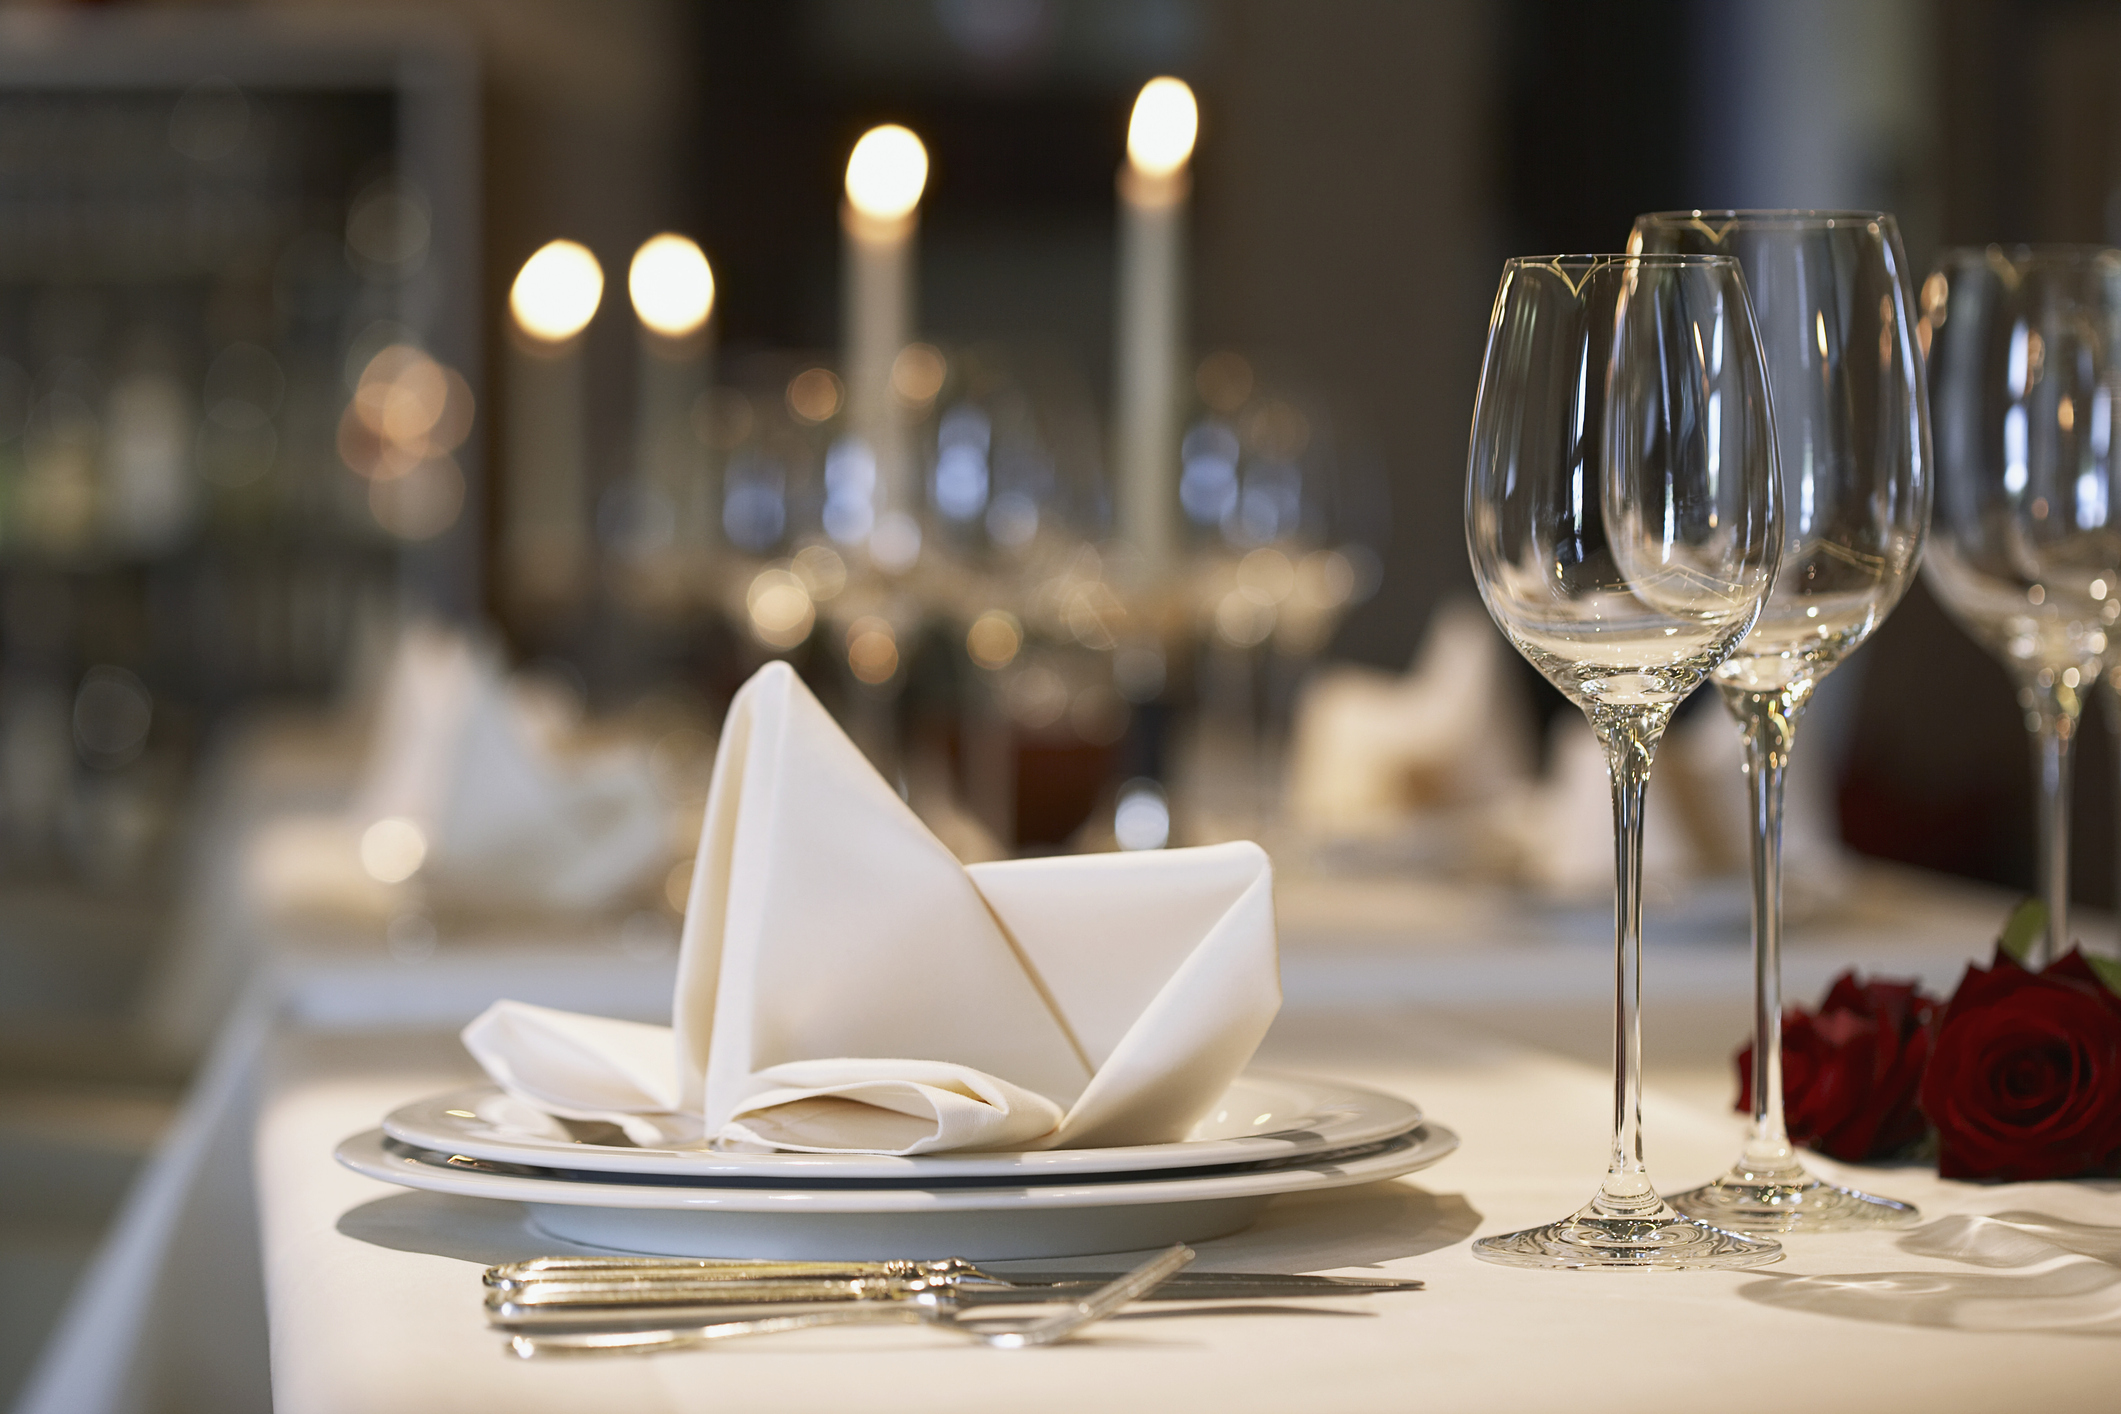 napkin-on-plate-at-elegant-place-settingjpg